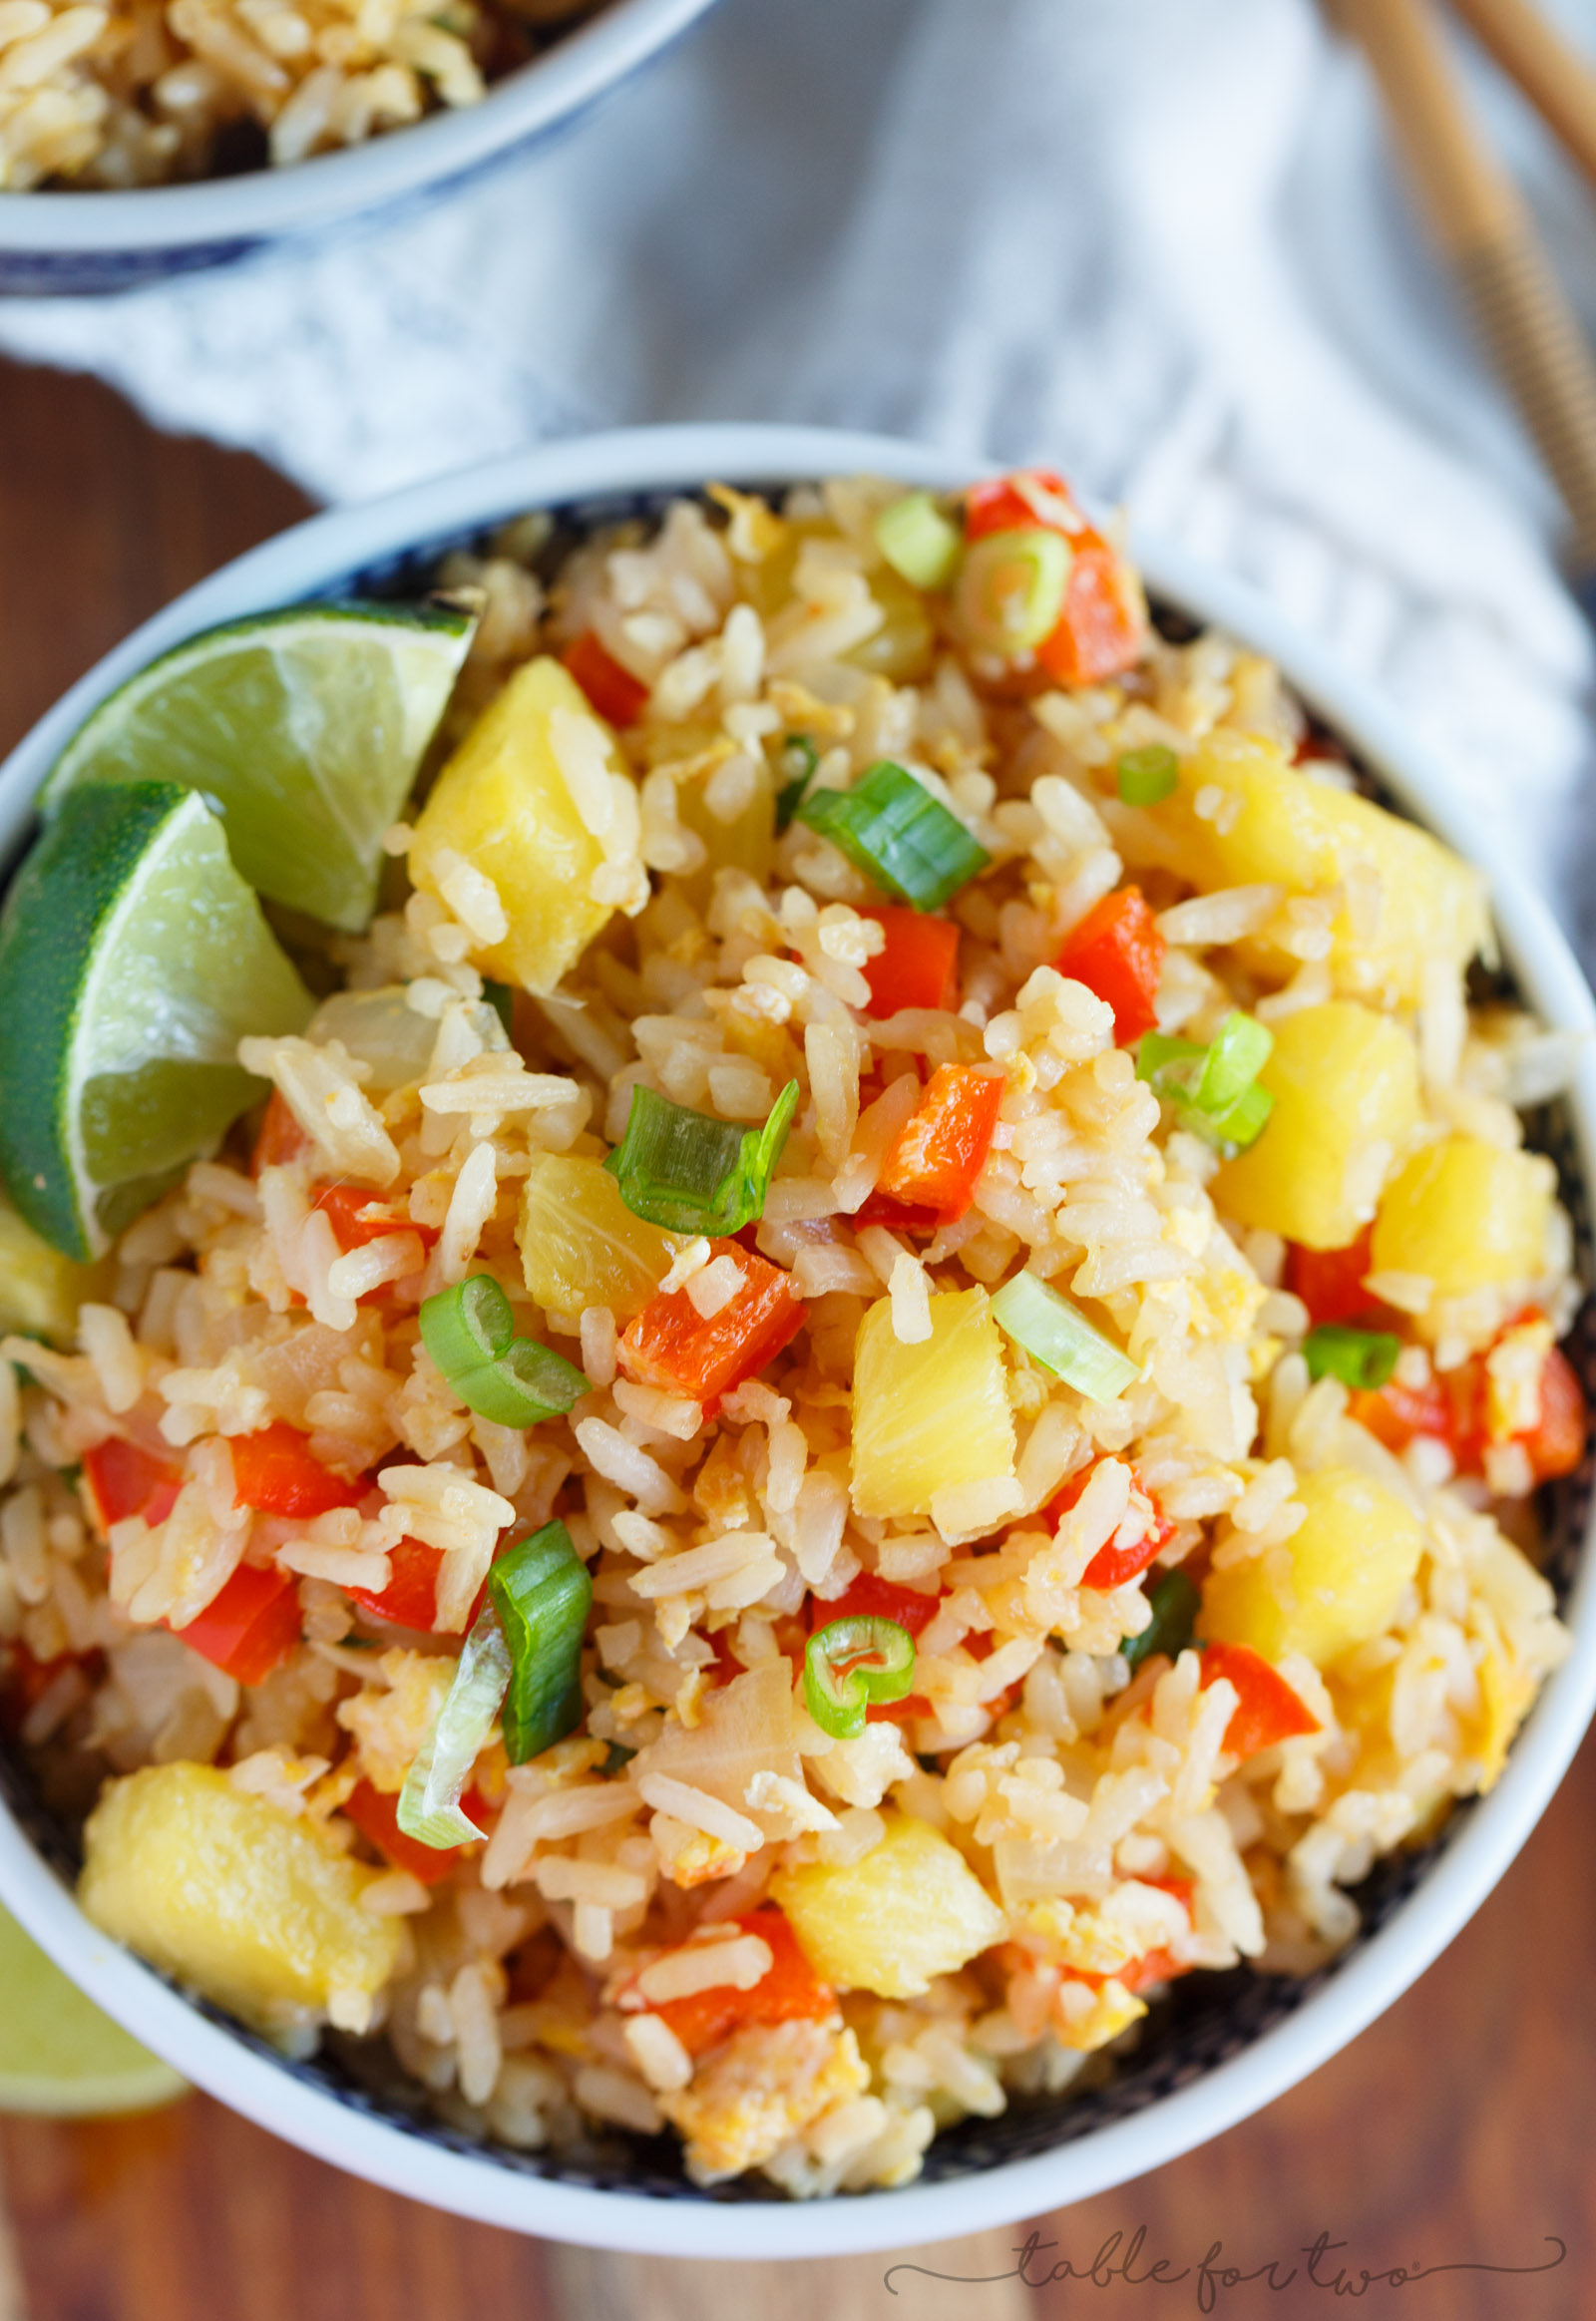 Take-out or take-in? You won't be able to tell that this pineapple fried rice was homemade and just as delicious as calling your neighborhood Thai takeout place! Much healthier to make this pineapple fried rice at home and it's super easy!